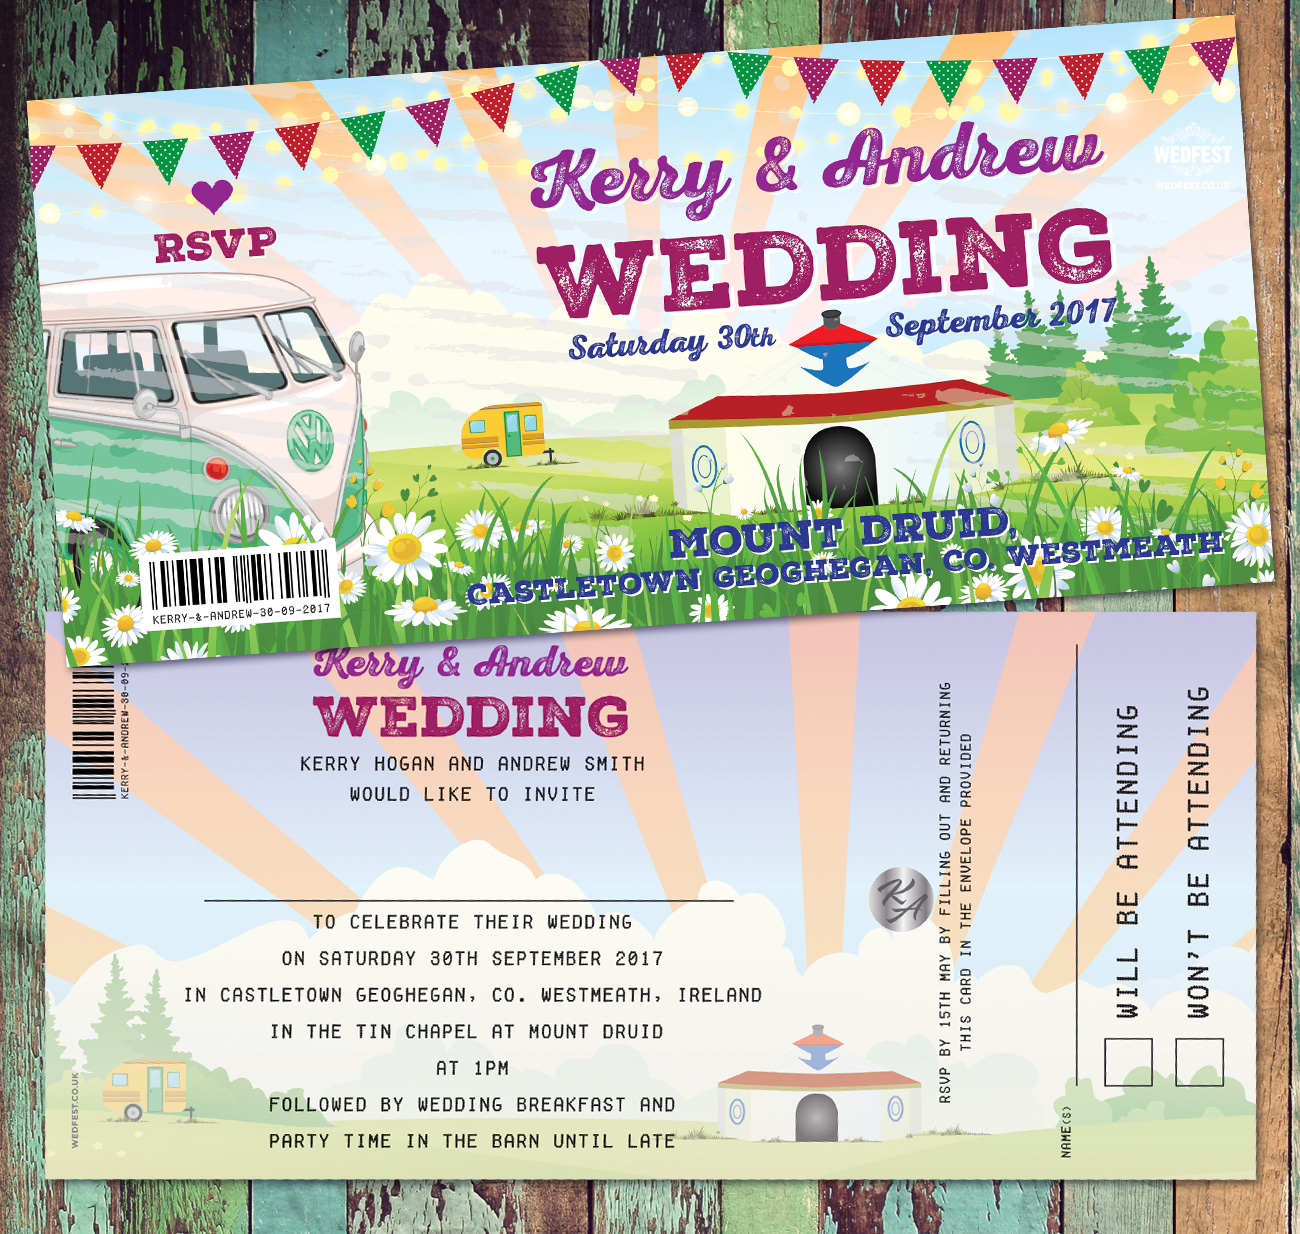 mount druid wedfest festival-weddings ireland invitations